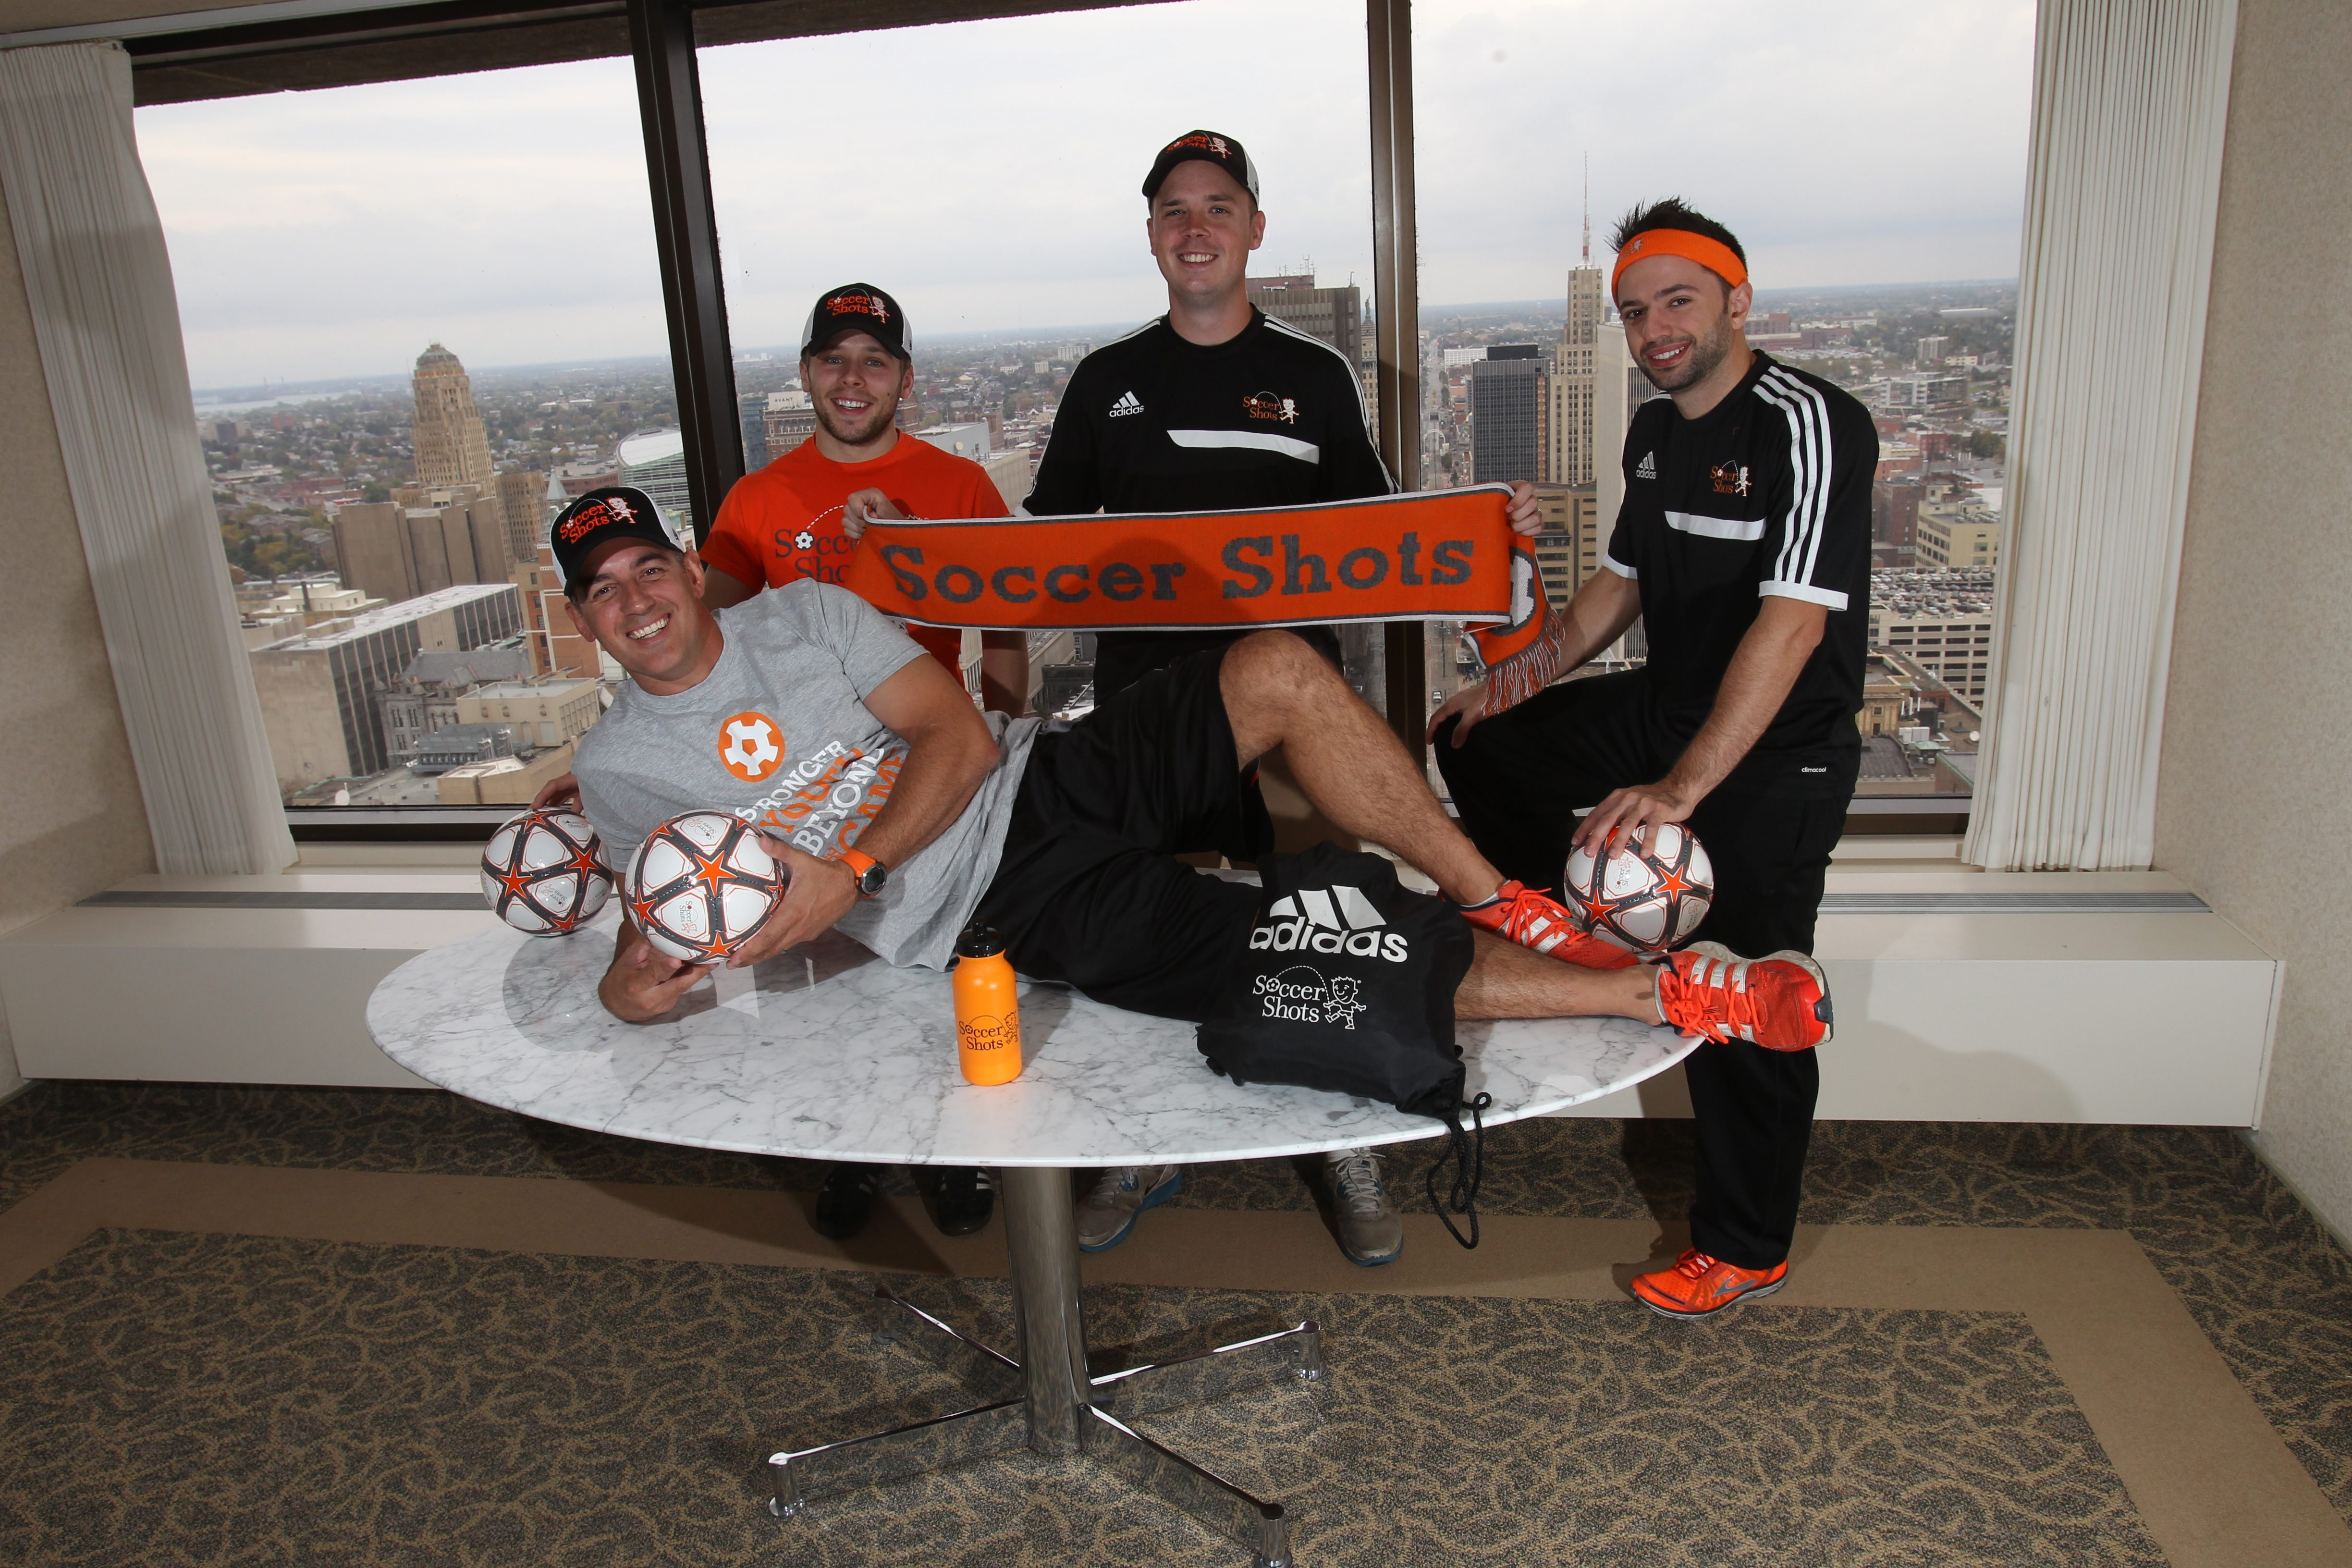 From left, Western New York Soccer Shots office manager Eli George, program ambassdor Yuri Polychenko, director of coaching Justin Sims and Executive Director Mark Miller, front.